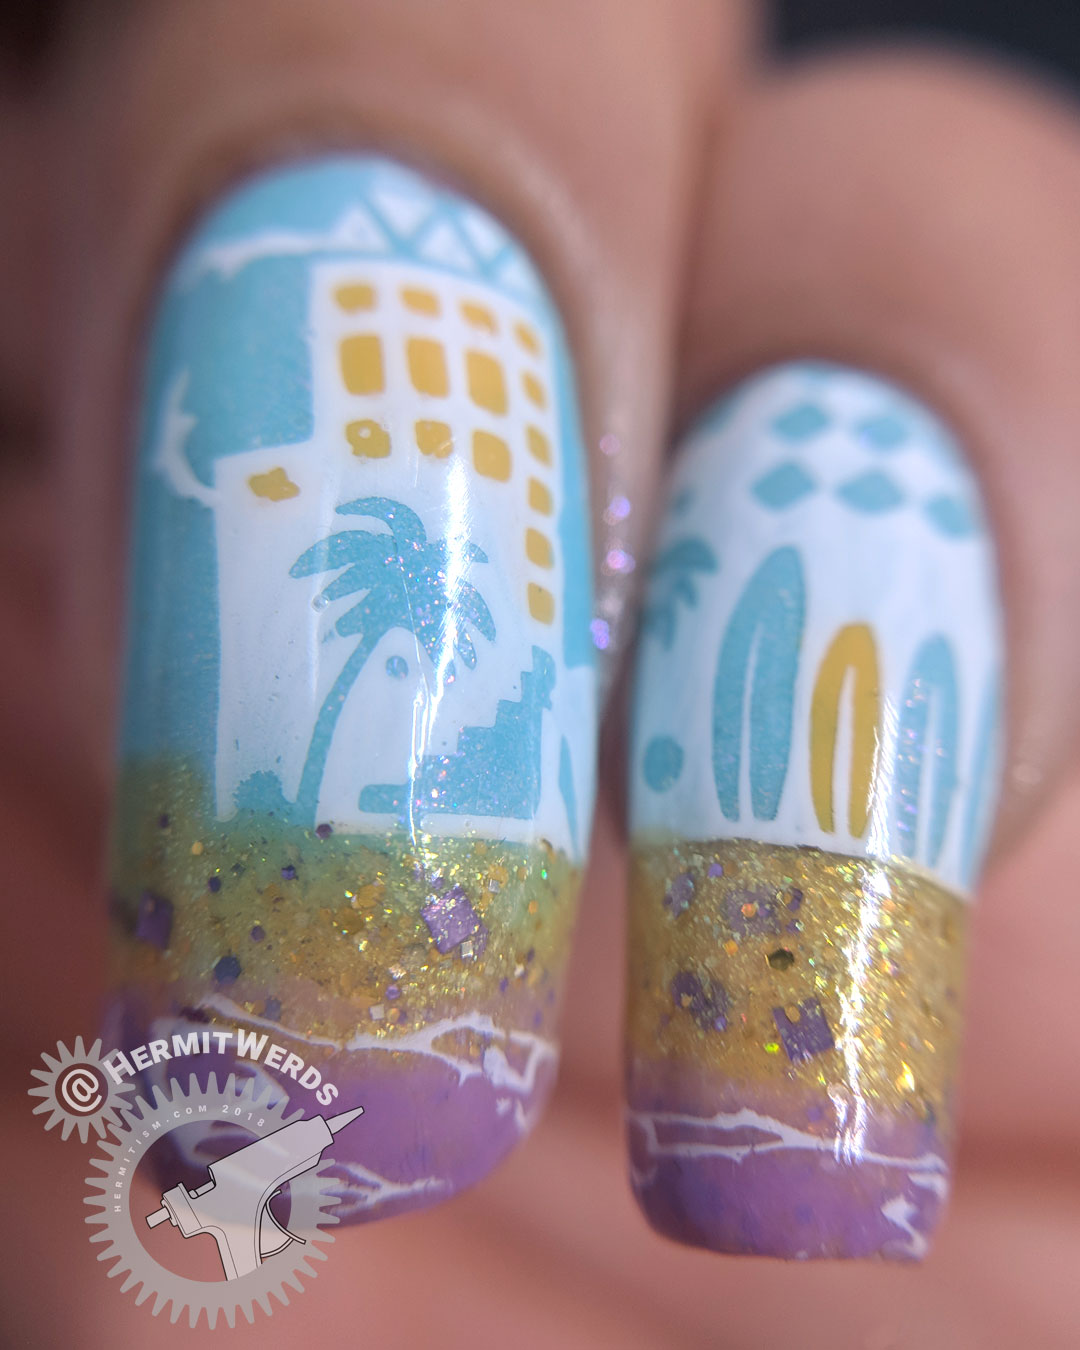 Day at the Beach 2.0 - Hermit Werds - nail art of a lilac ocean and glittery sand with waves, sandcastle, and beach-y city.